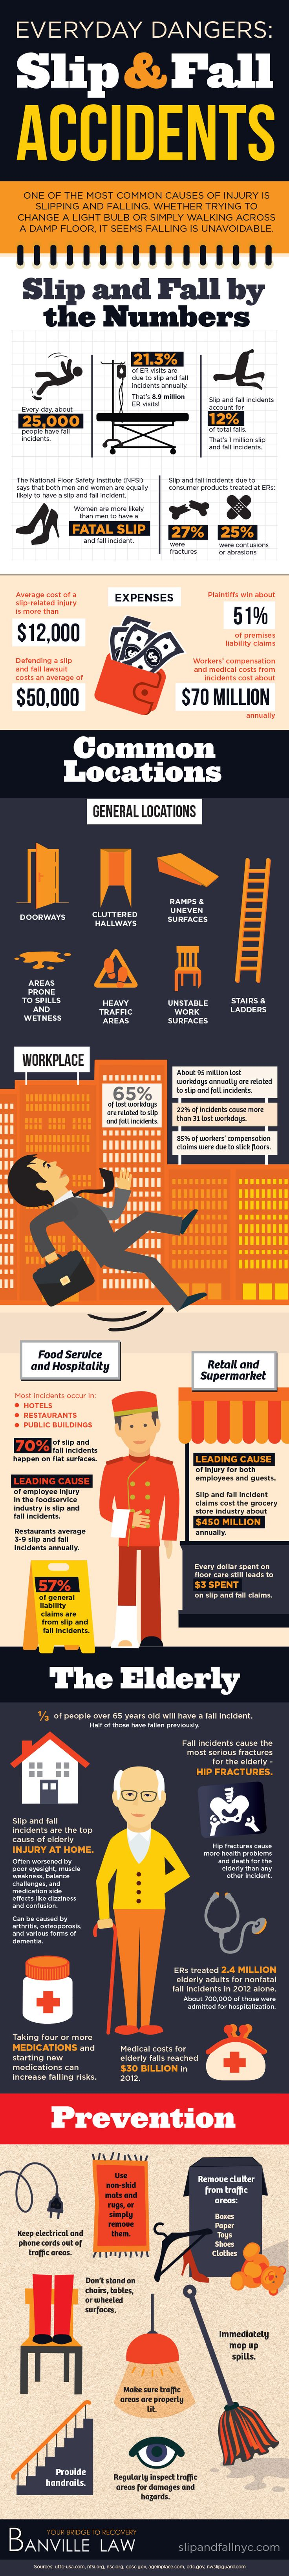 Everyday Dangers Of Slip And Fall Accidents #Infographic #Accidents #Injuries #Workplace